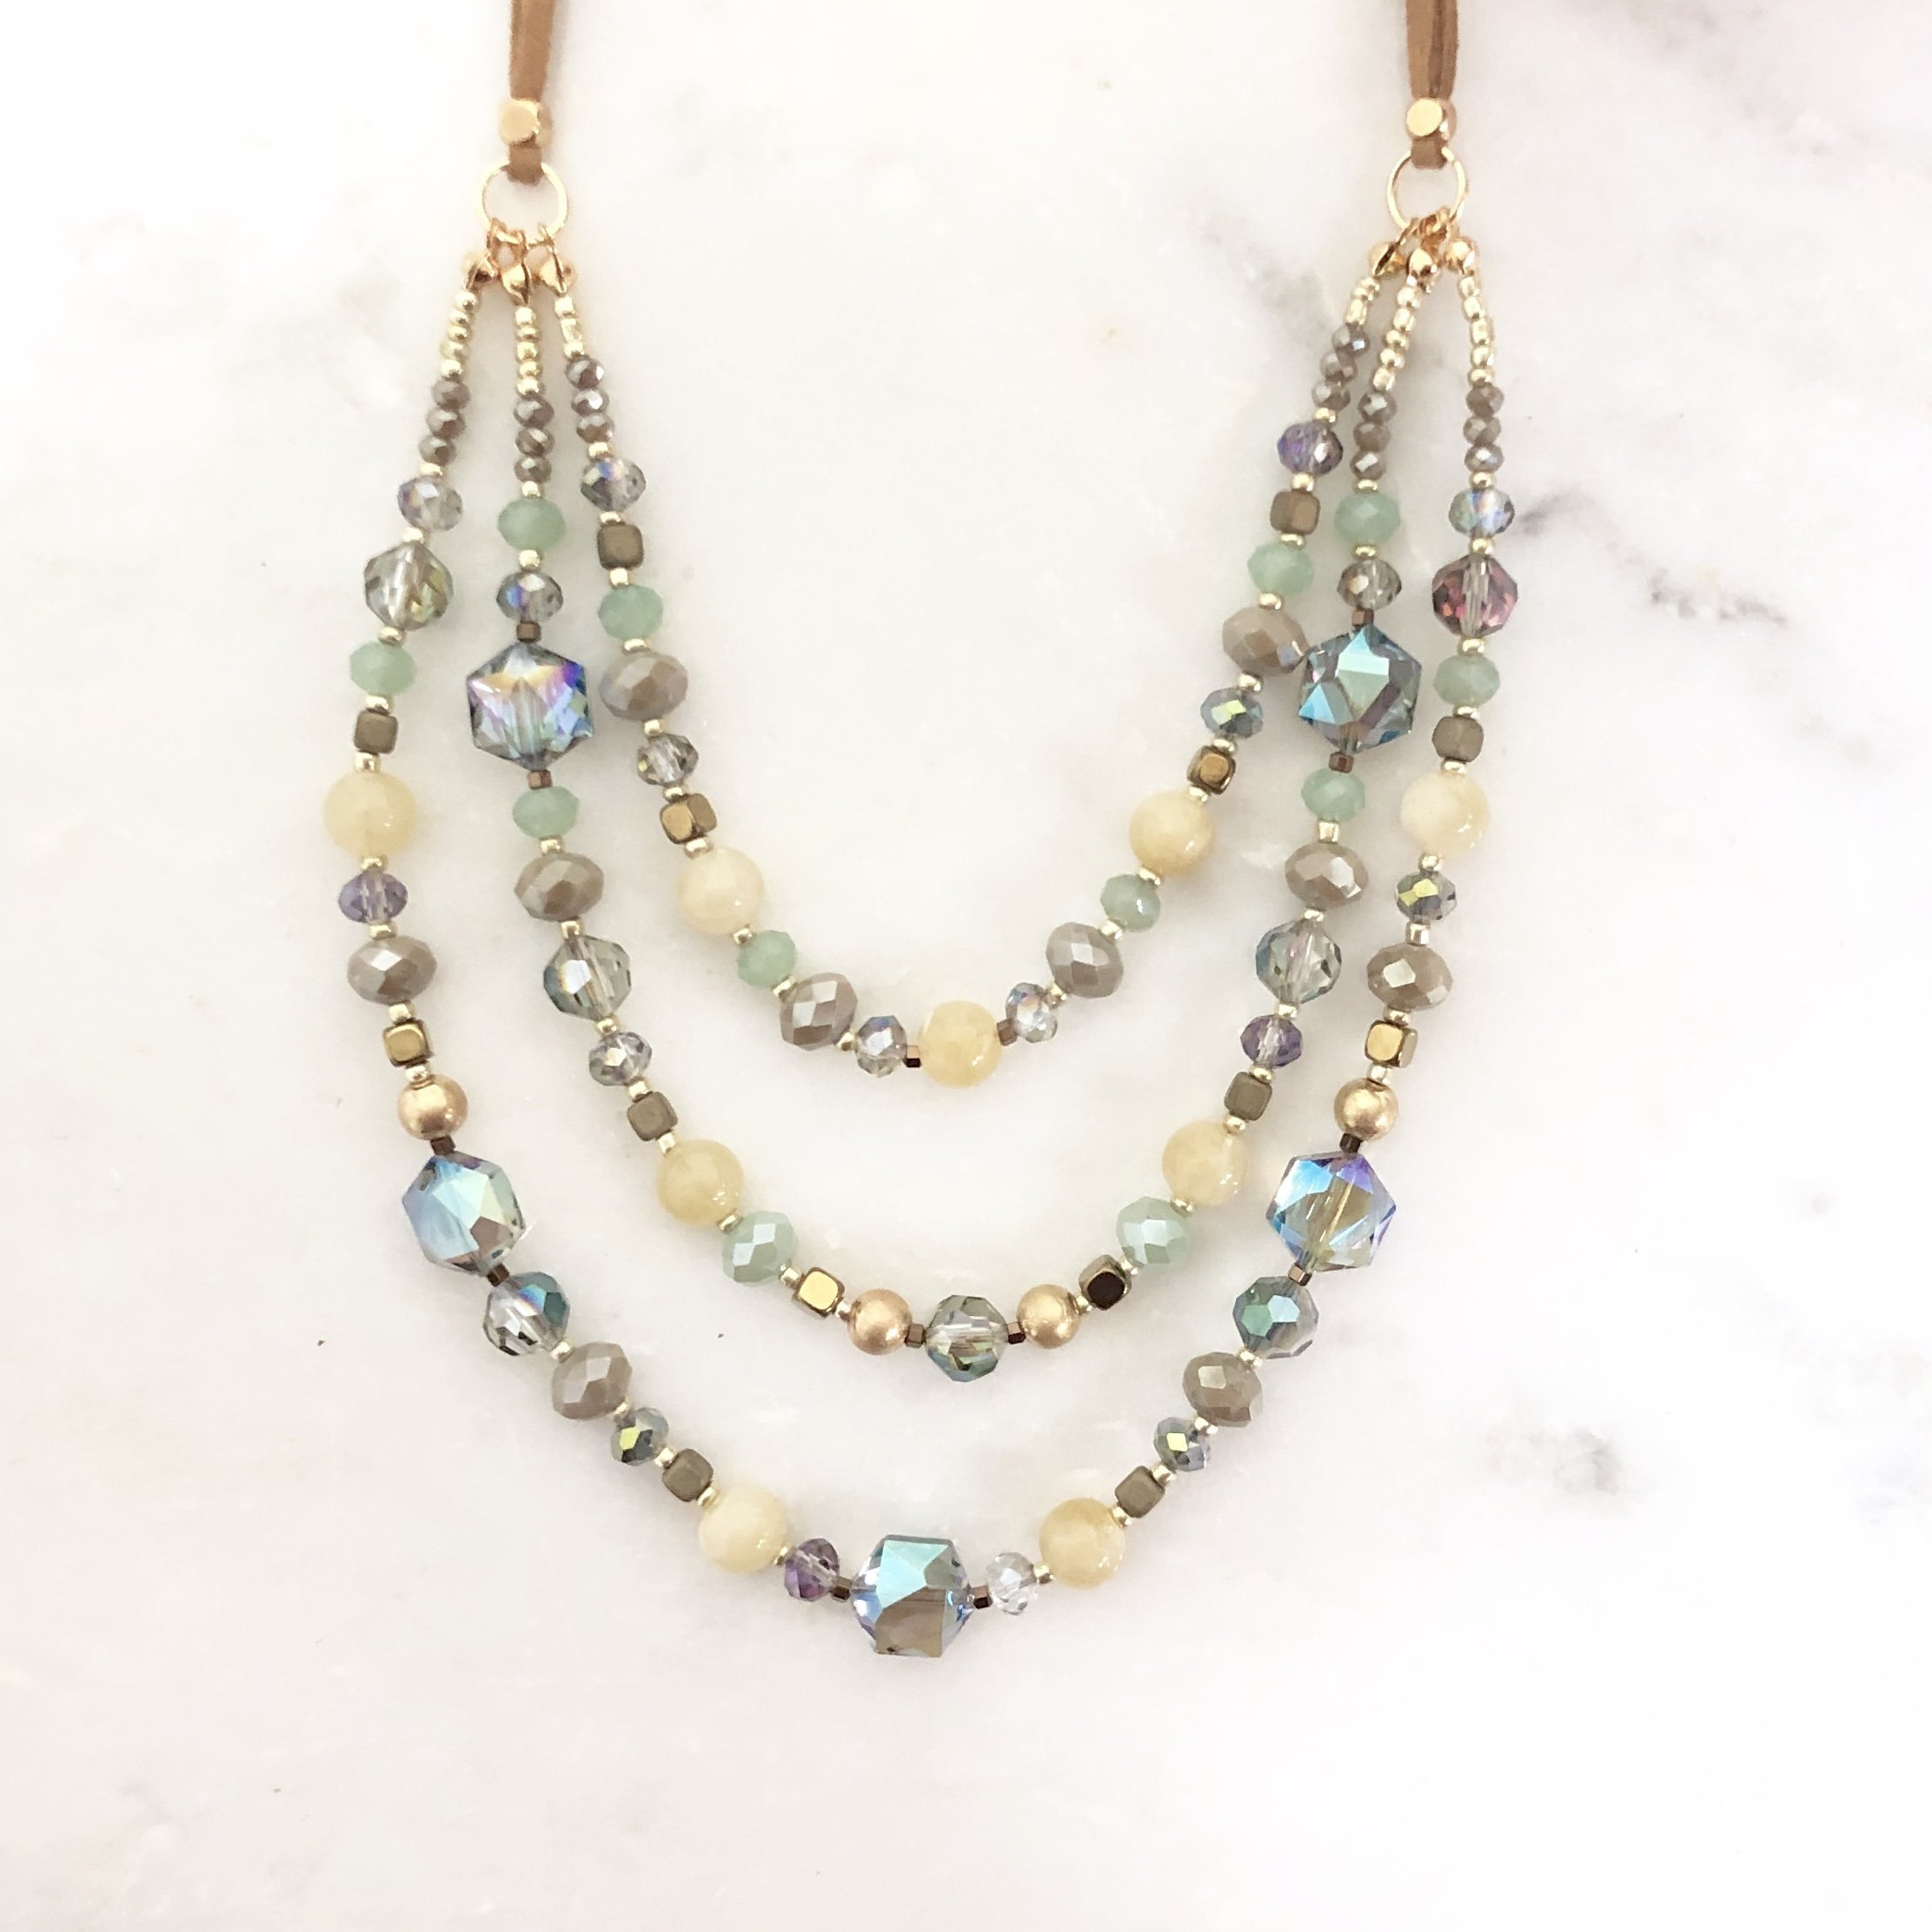 Image of Quasar Beaded Layered Necklace in Mint